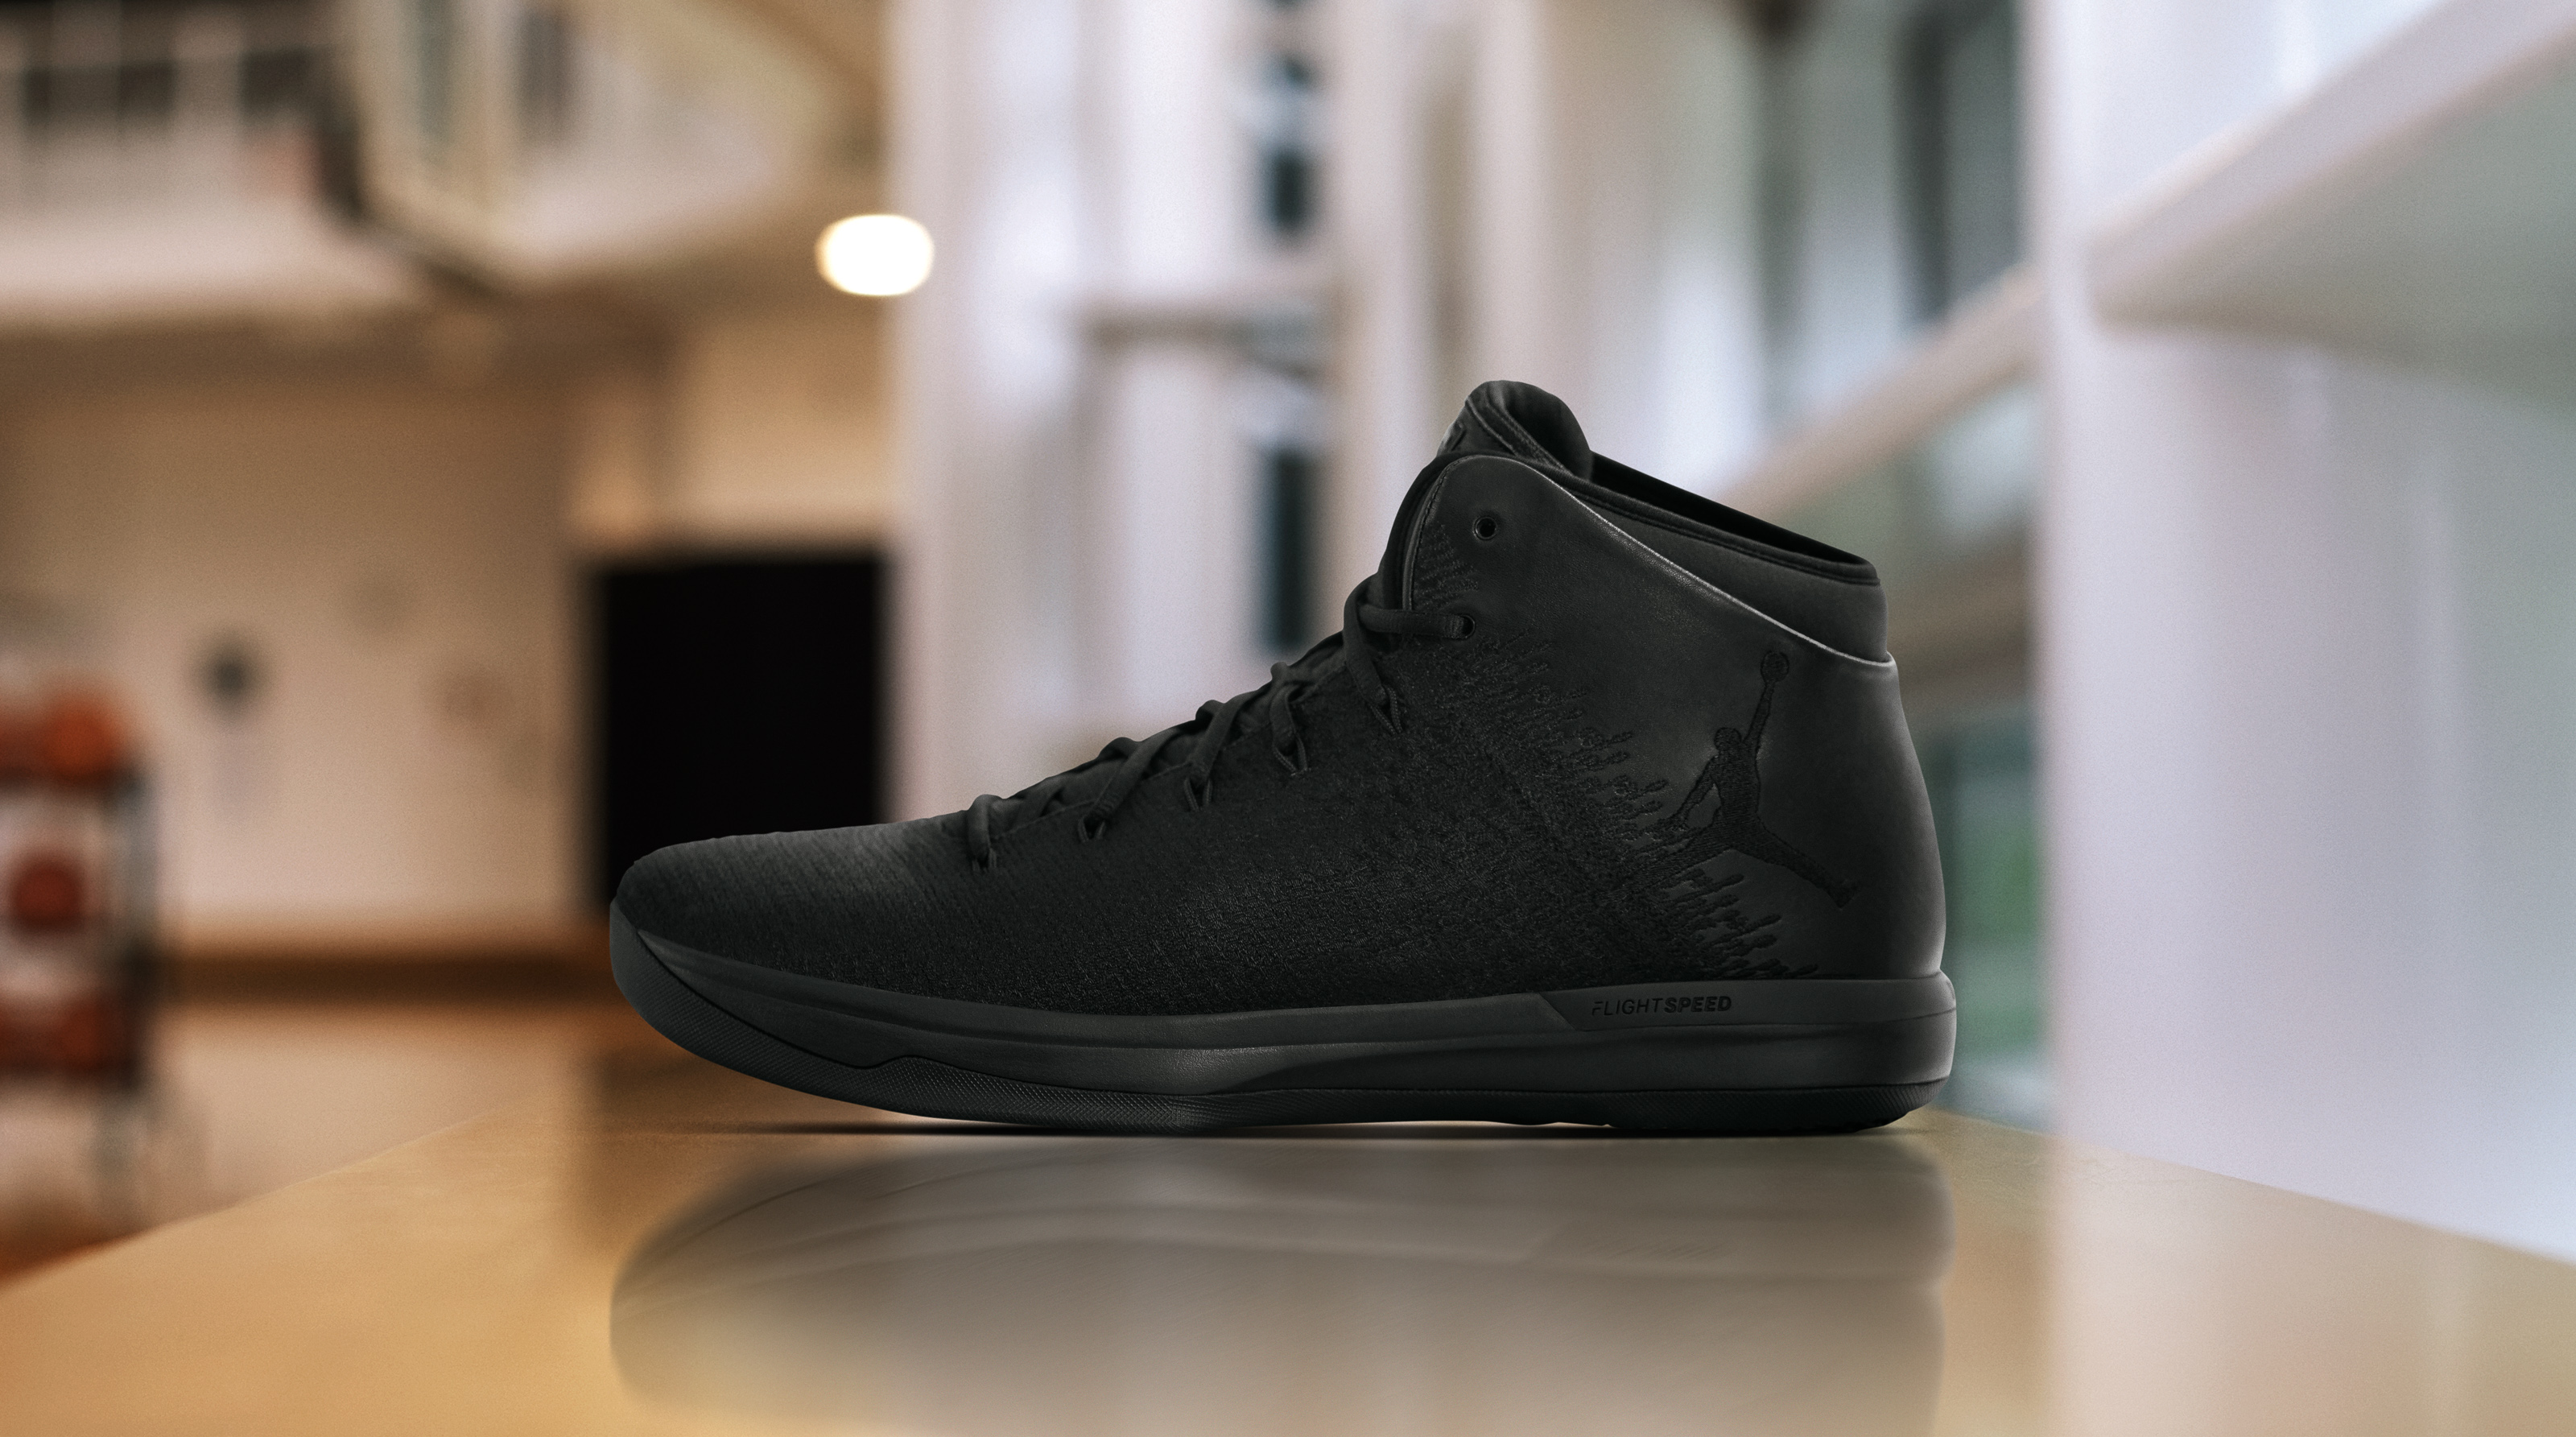 Take A Look At Jordan Brand's Signature